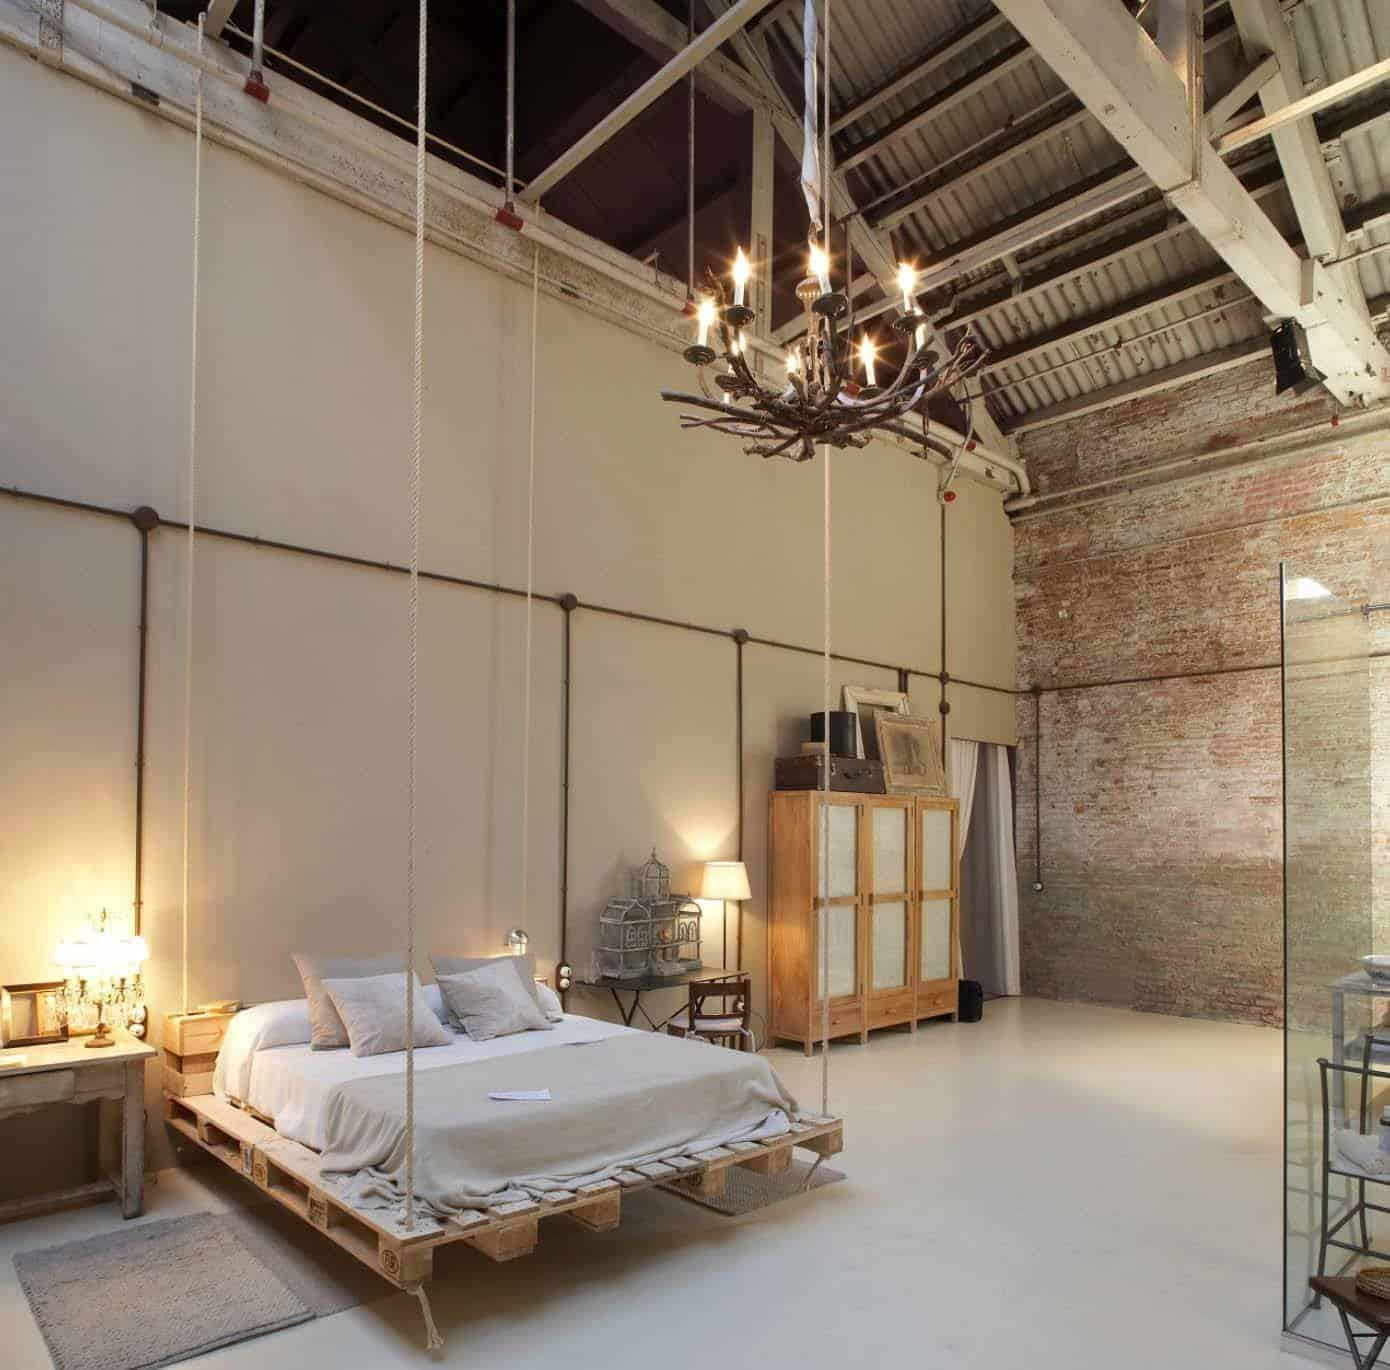 35 edgy industrial style bedrooms creating a statement. Black Bedroom Furniture Sets. Home Design Ideas